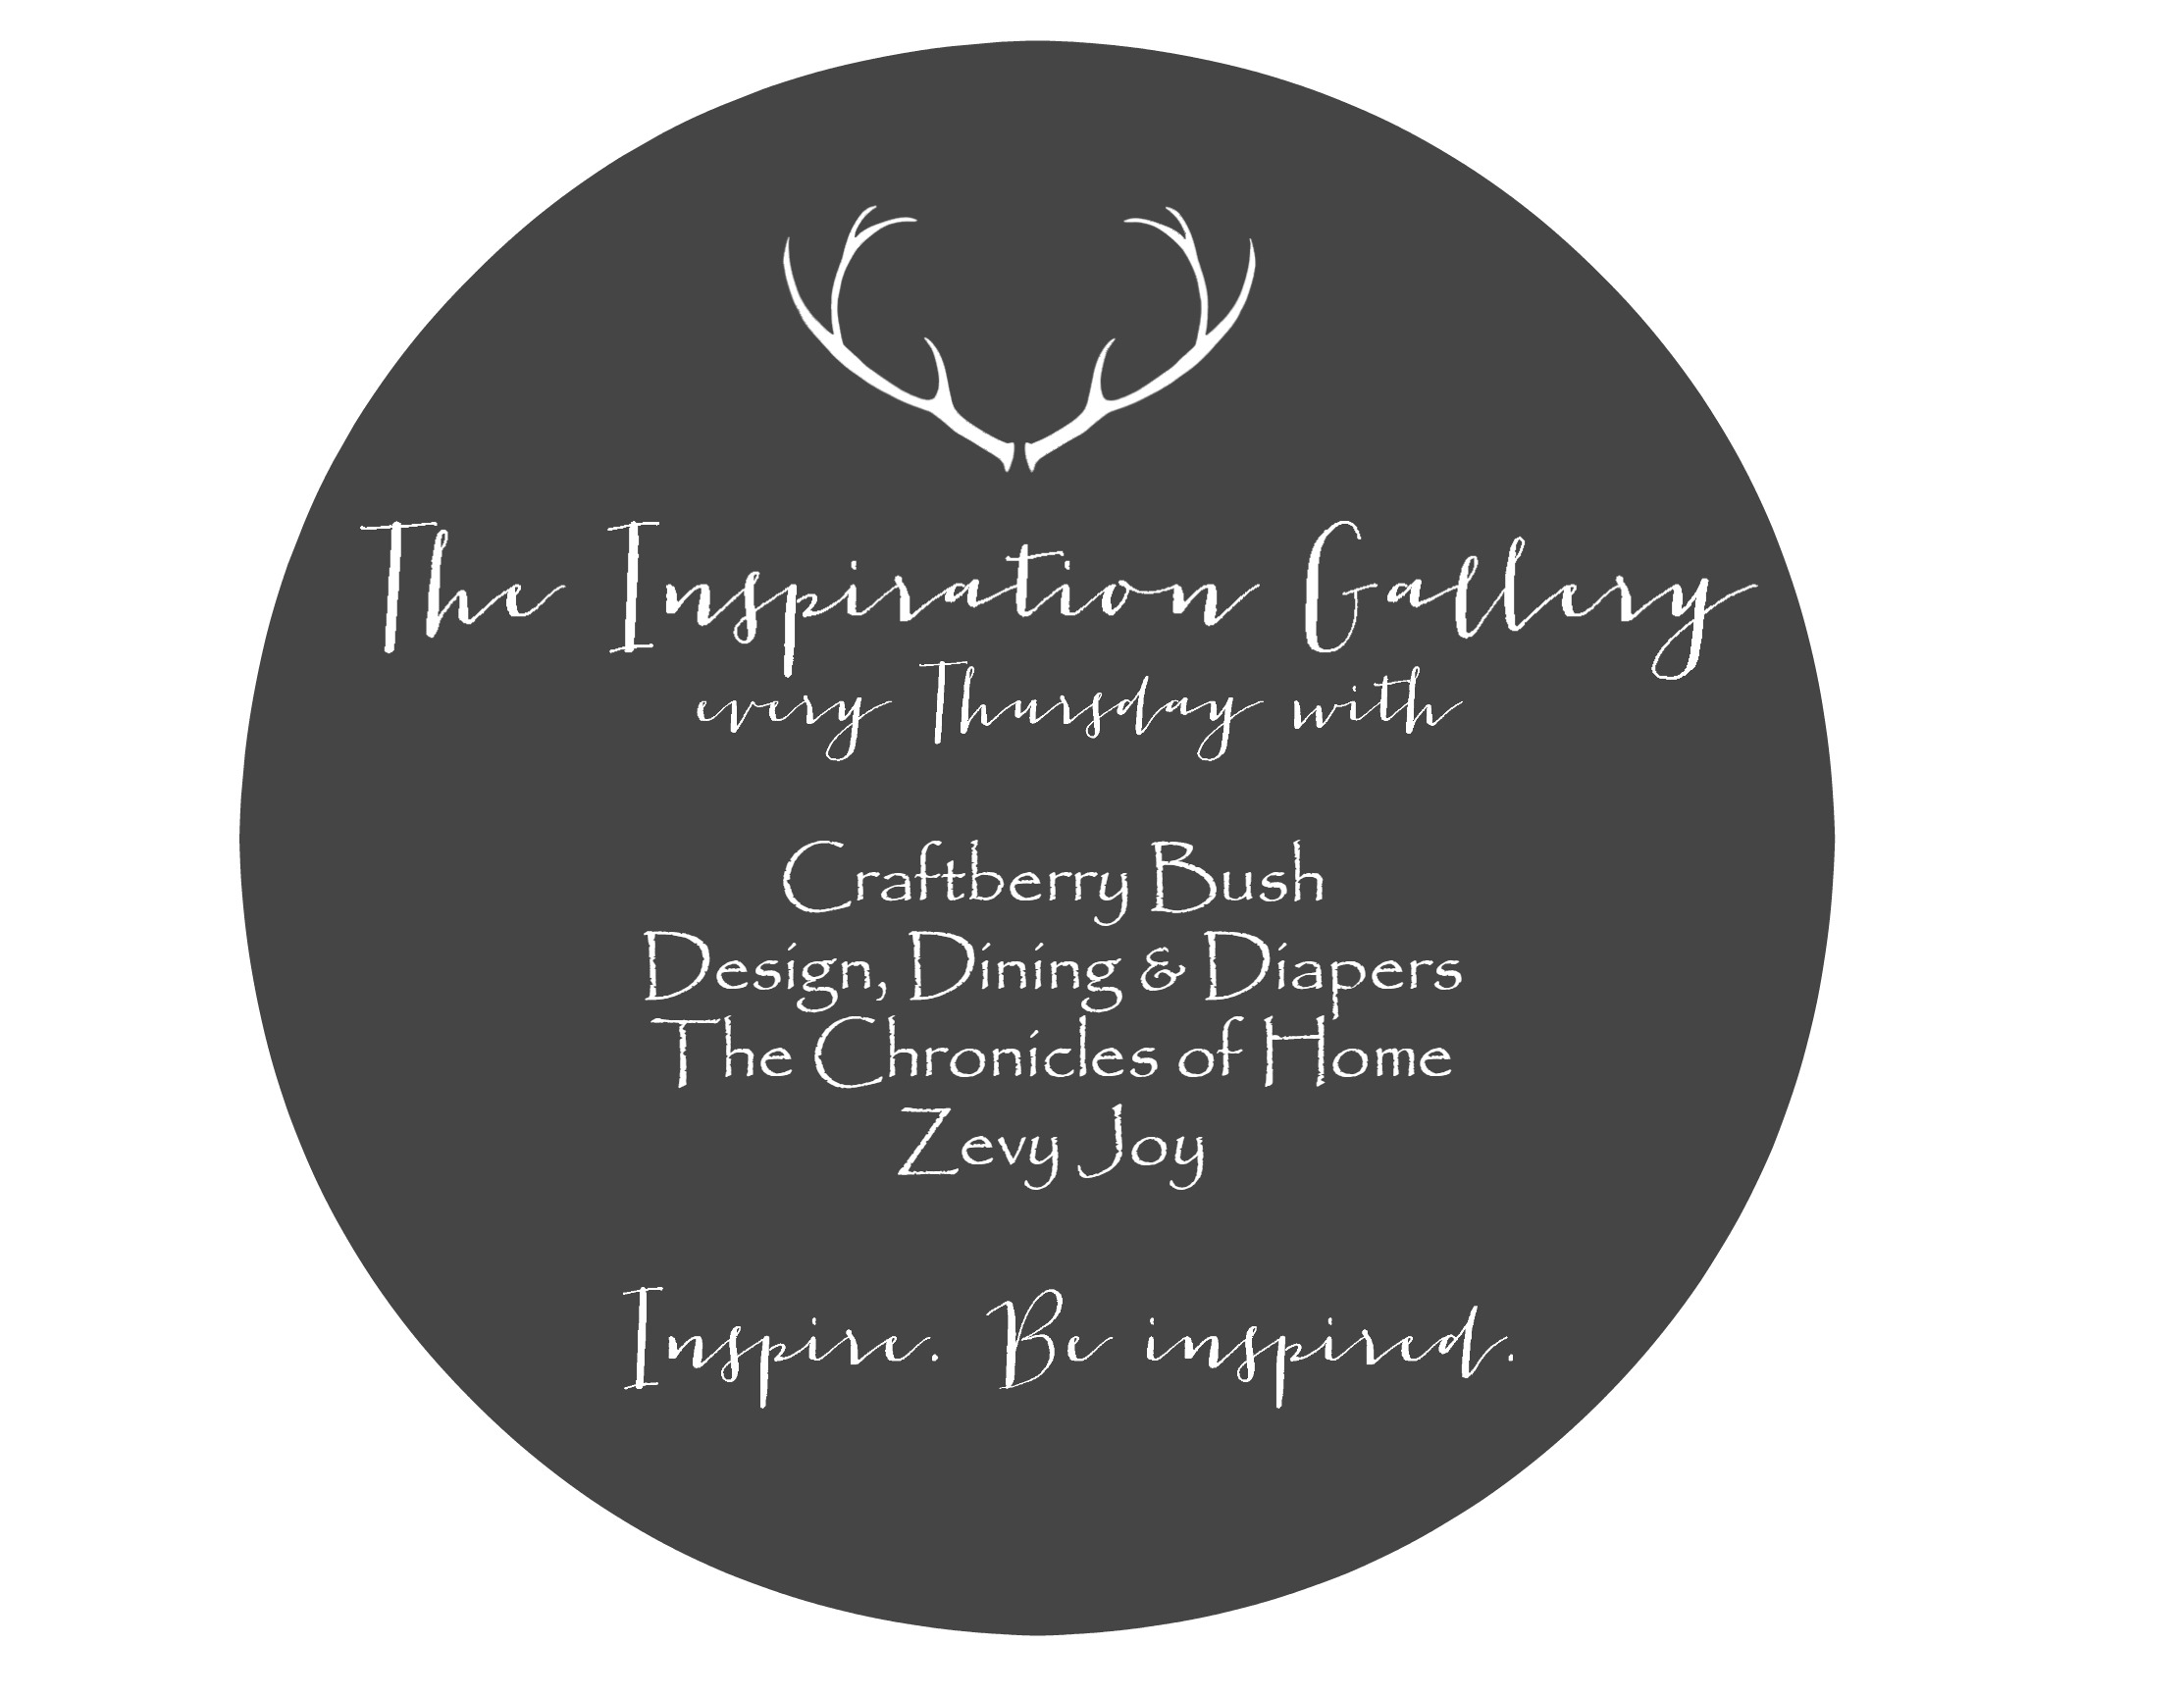 Theinspirationgallerbuttonnew